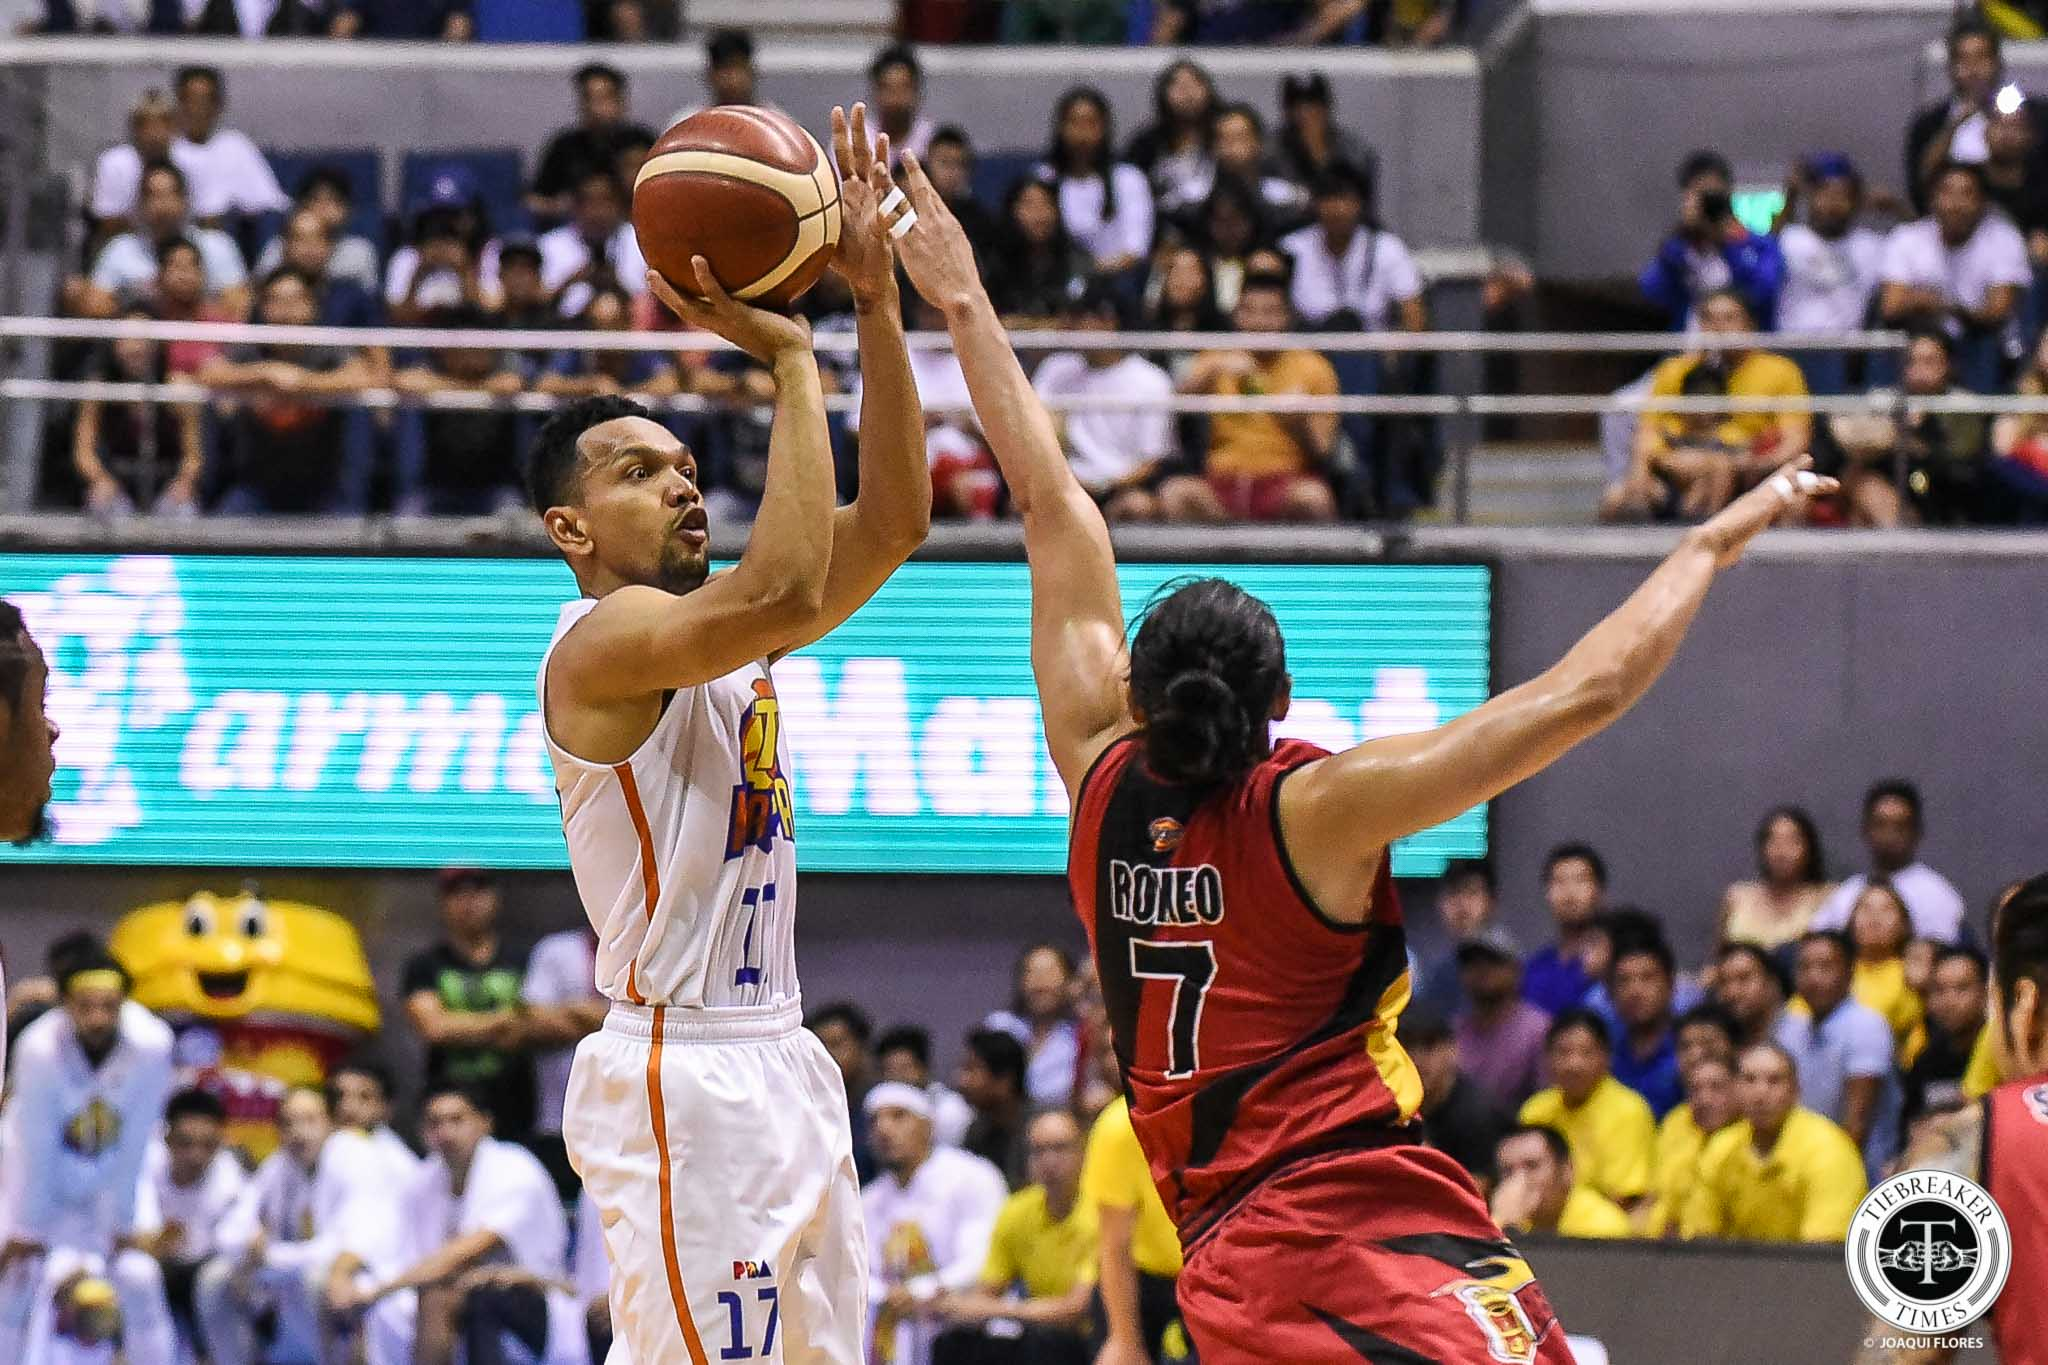 Tiebreaker Times Jayson Castro, TNT charge Finals Game 2 loss to experience Basketball News PBA  TNT Katropa PBA Season 44 Jayson Castro Bong Ravena 2019 PBA Commissioners Cup